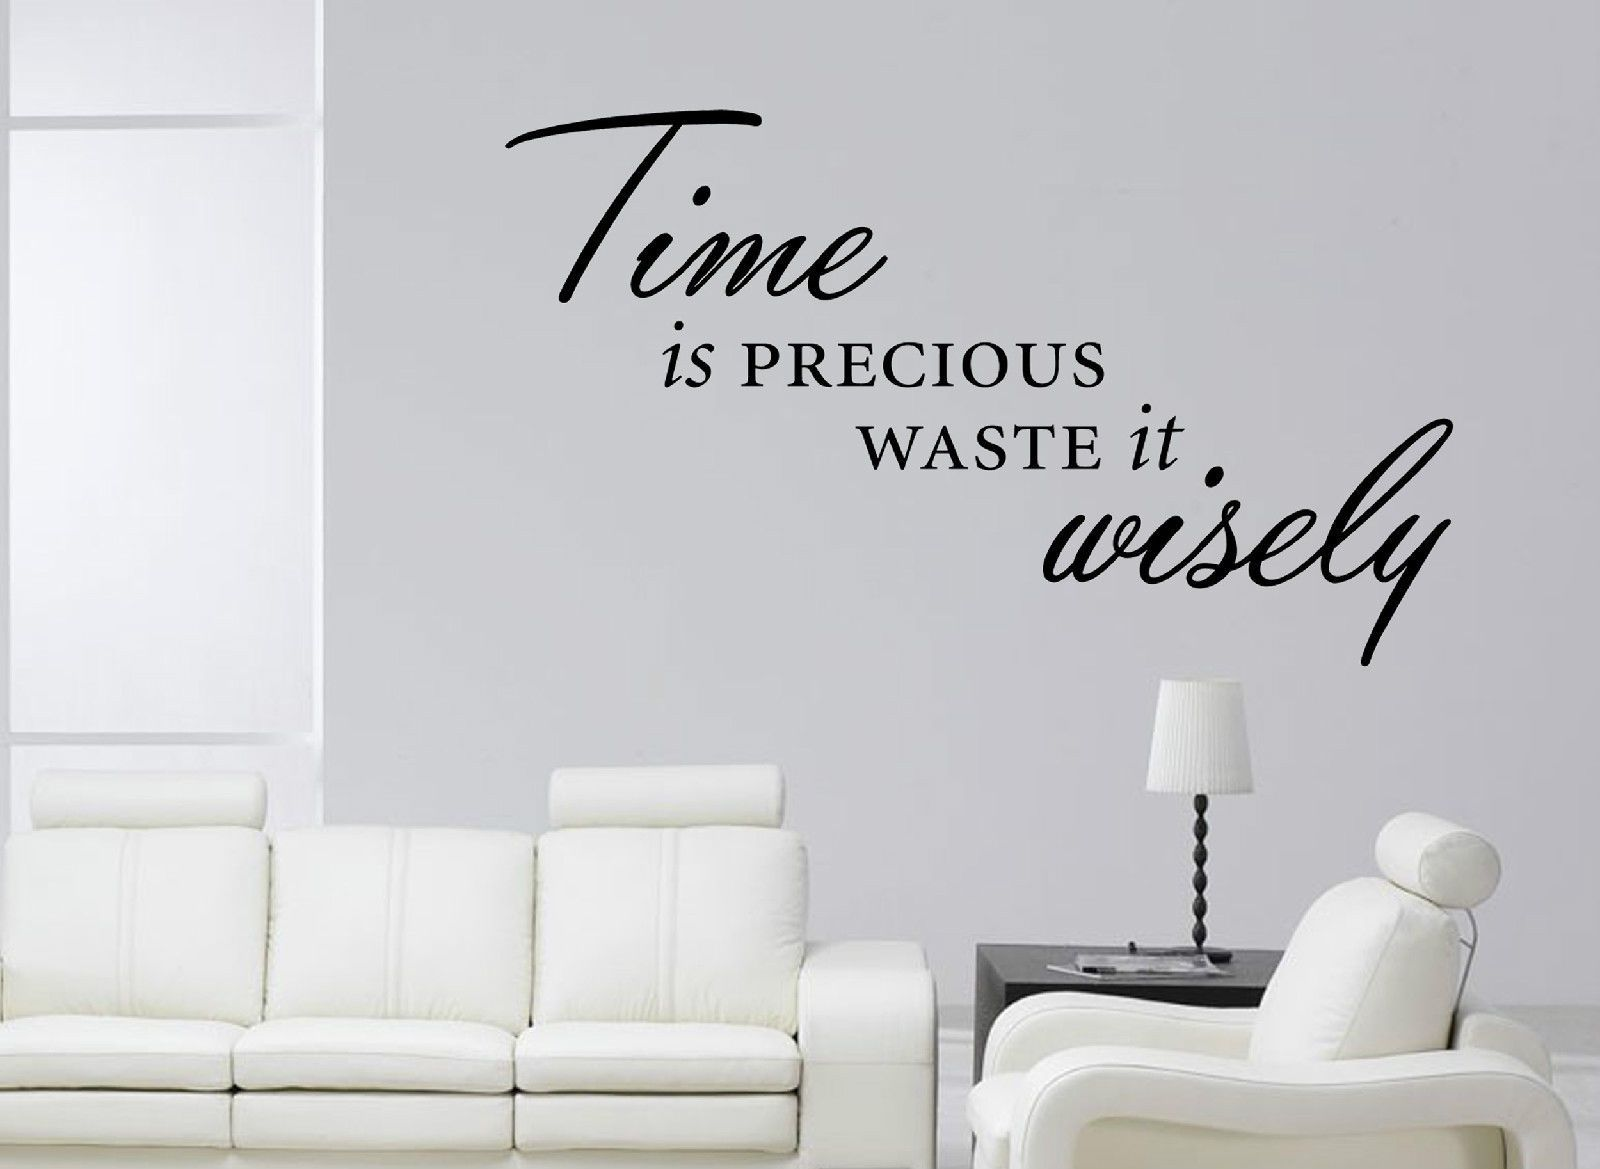 Time is precious waste it wisely wall art sticker quote decal modern